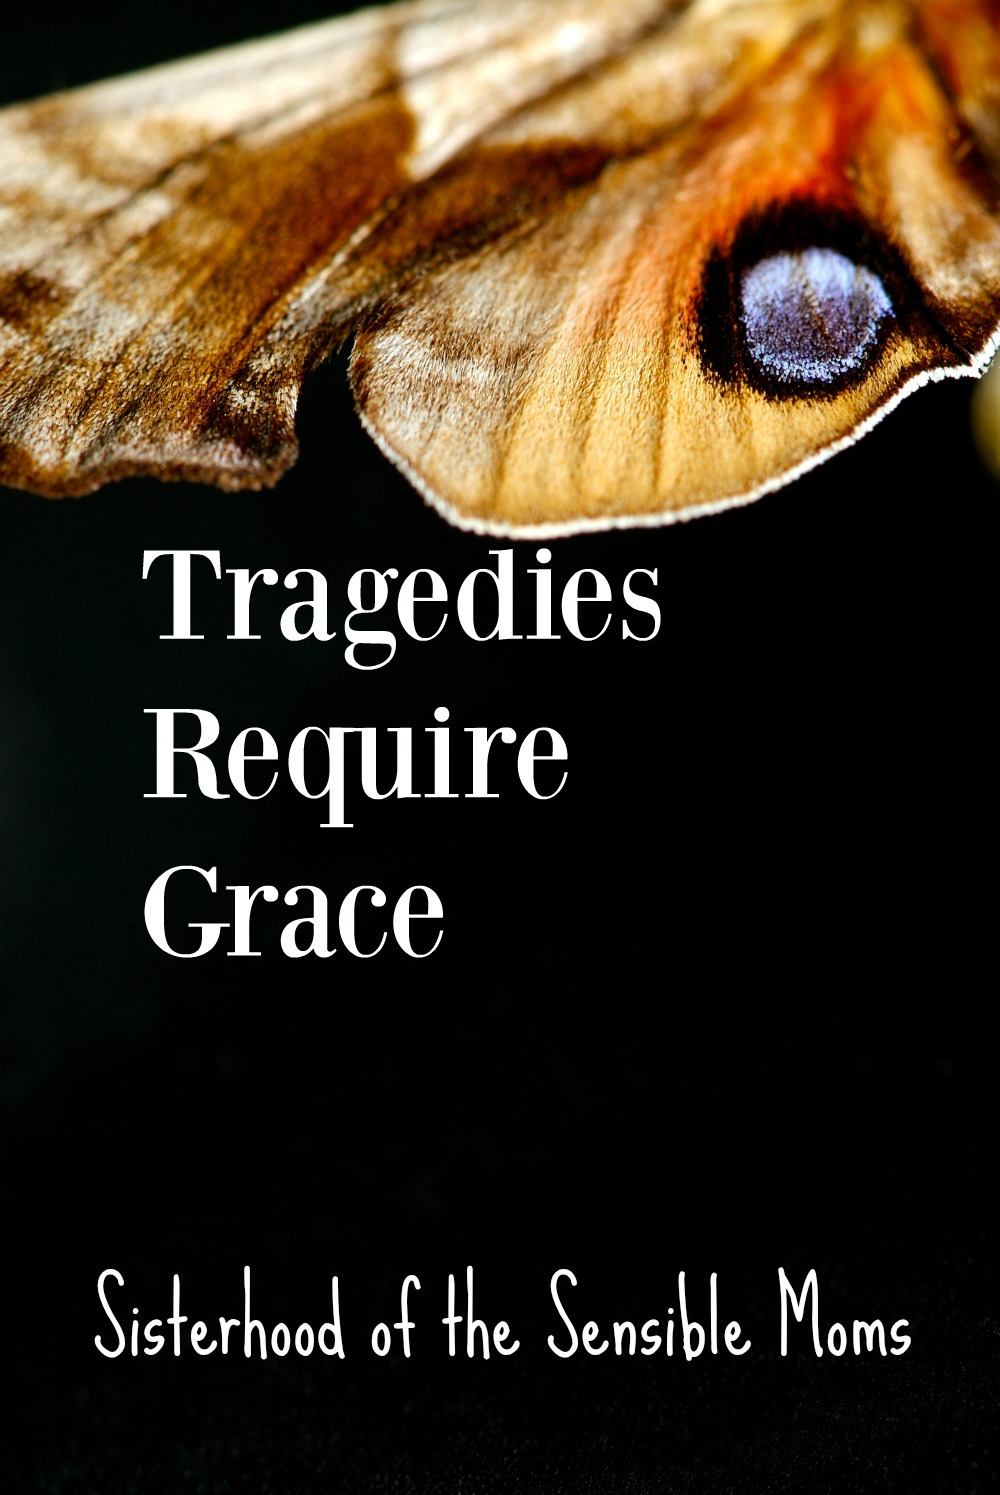 Tragedies require grace. We have the tendency to pass judgement over other parents when tragedy happens to them. Here's why we reject that accidents happen.| Sisterhood of the Sensible Moms